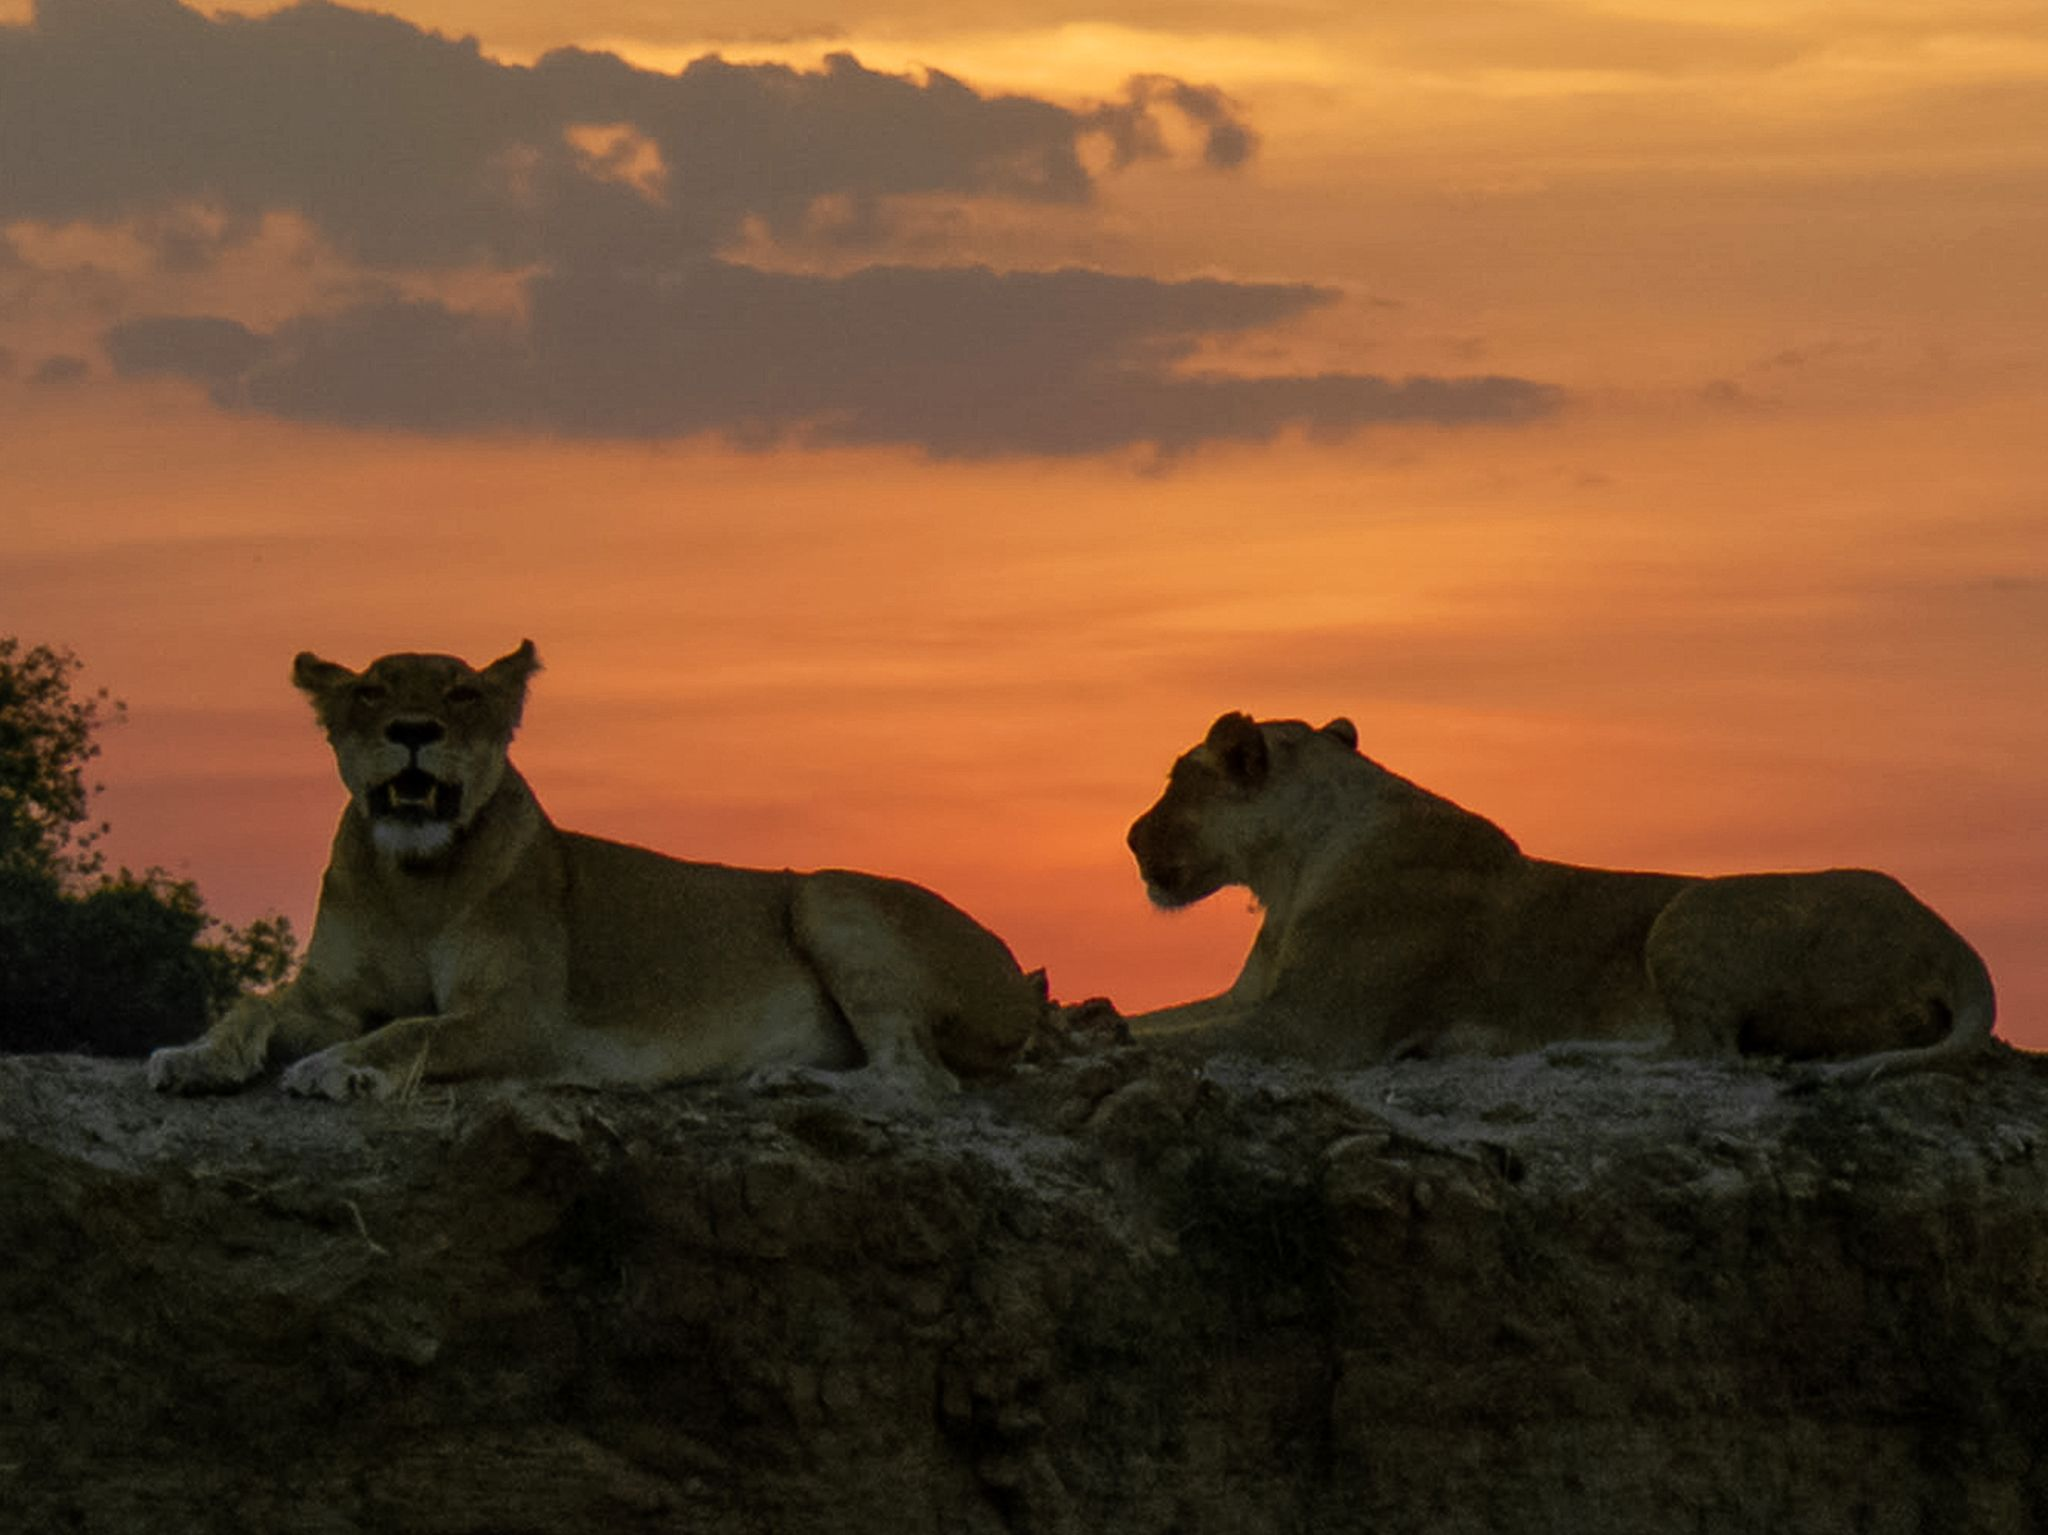 Two lionesses resting on top of river bank at sunset.  This image is from Predator Land. [Photo of the day - ژوئن 2019]